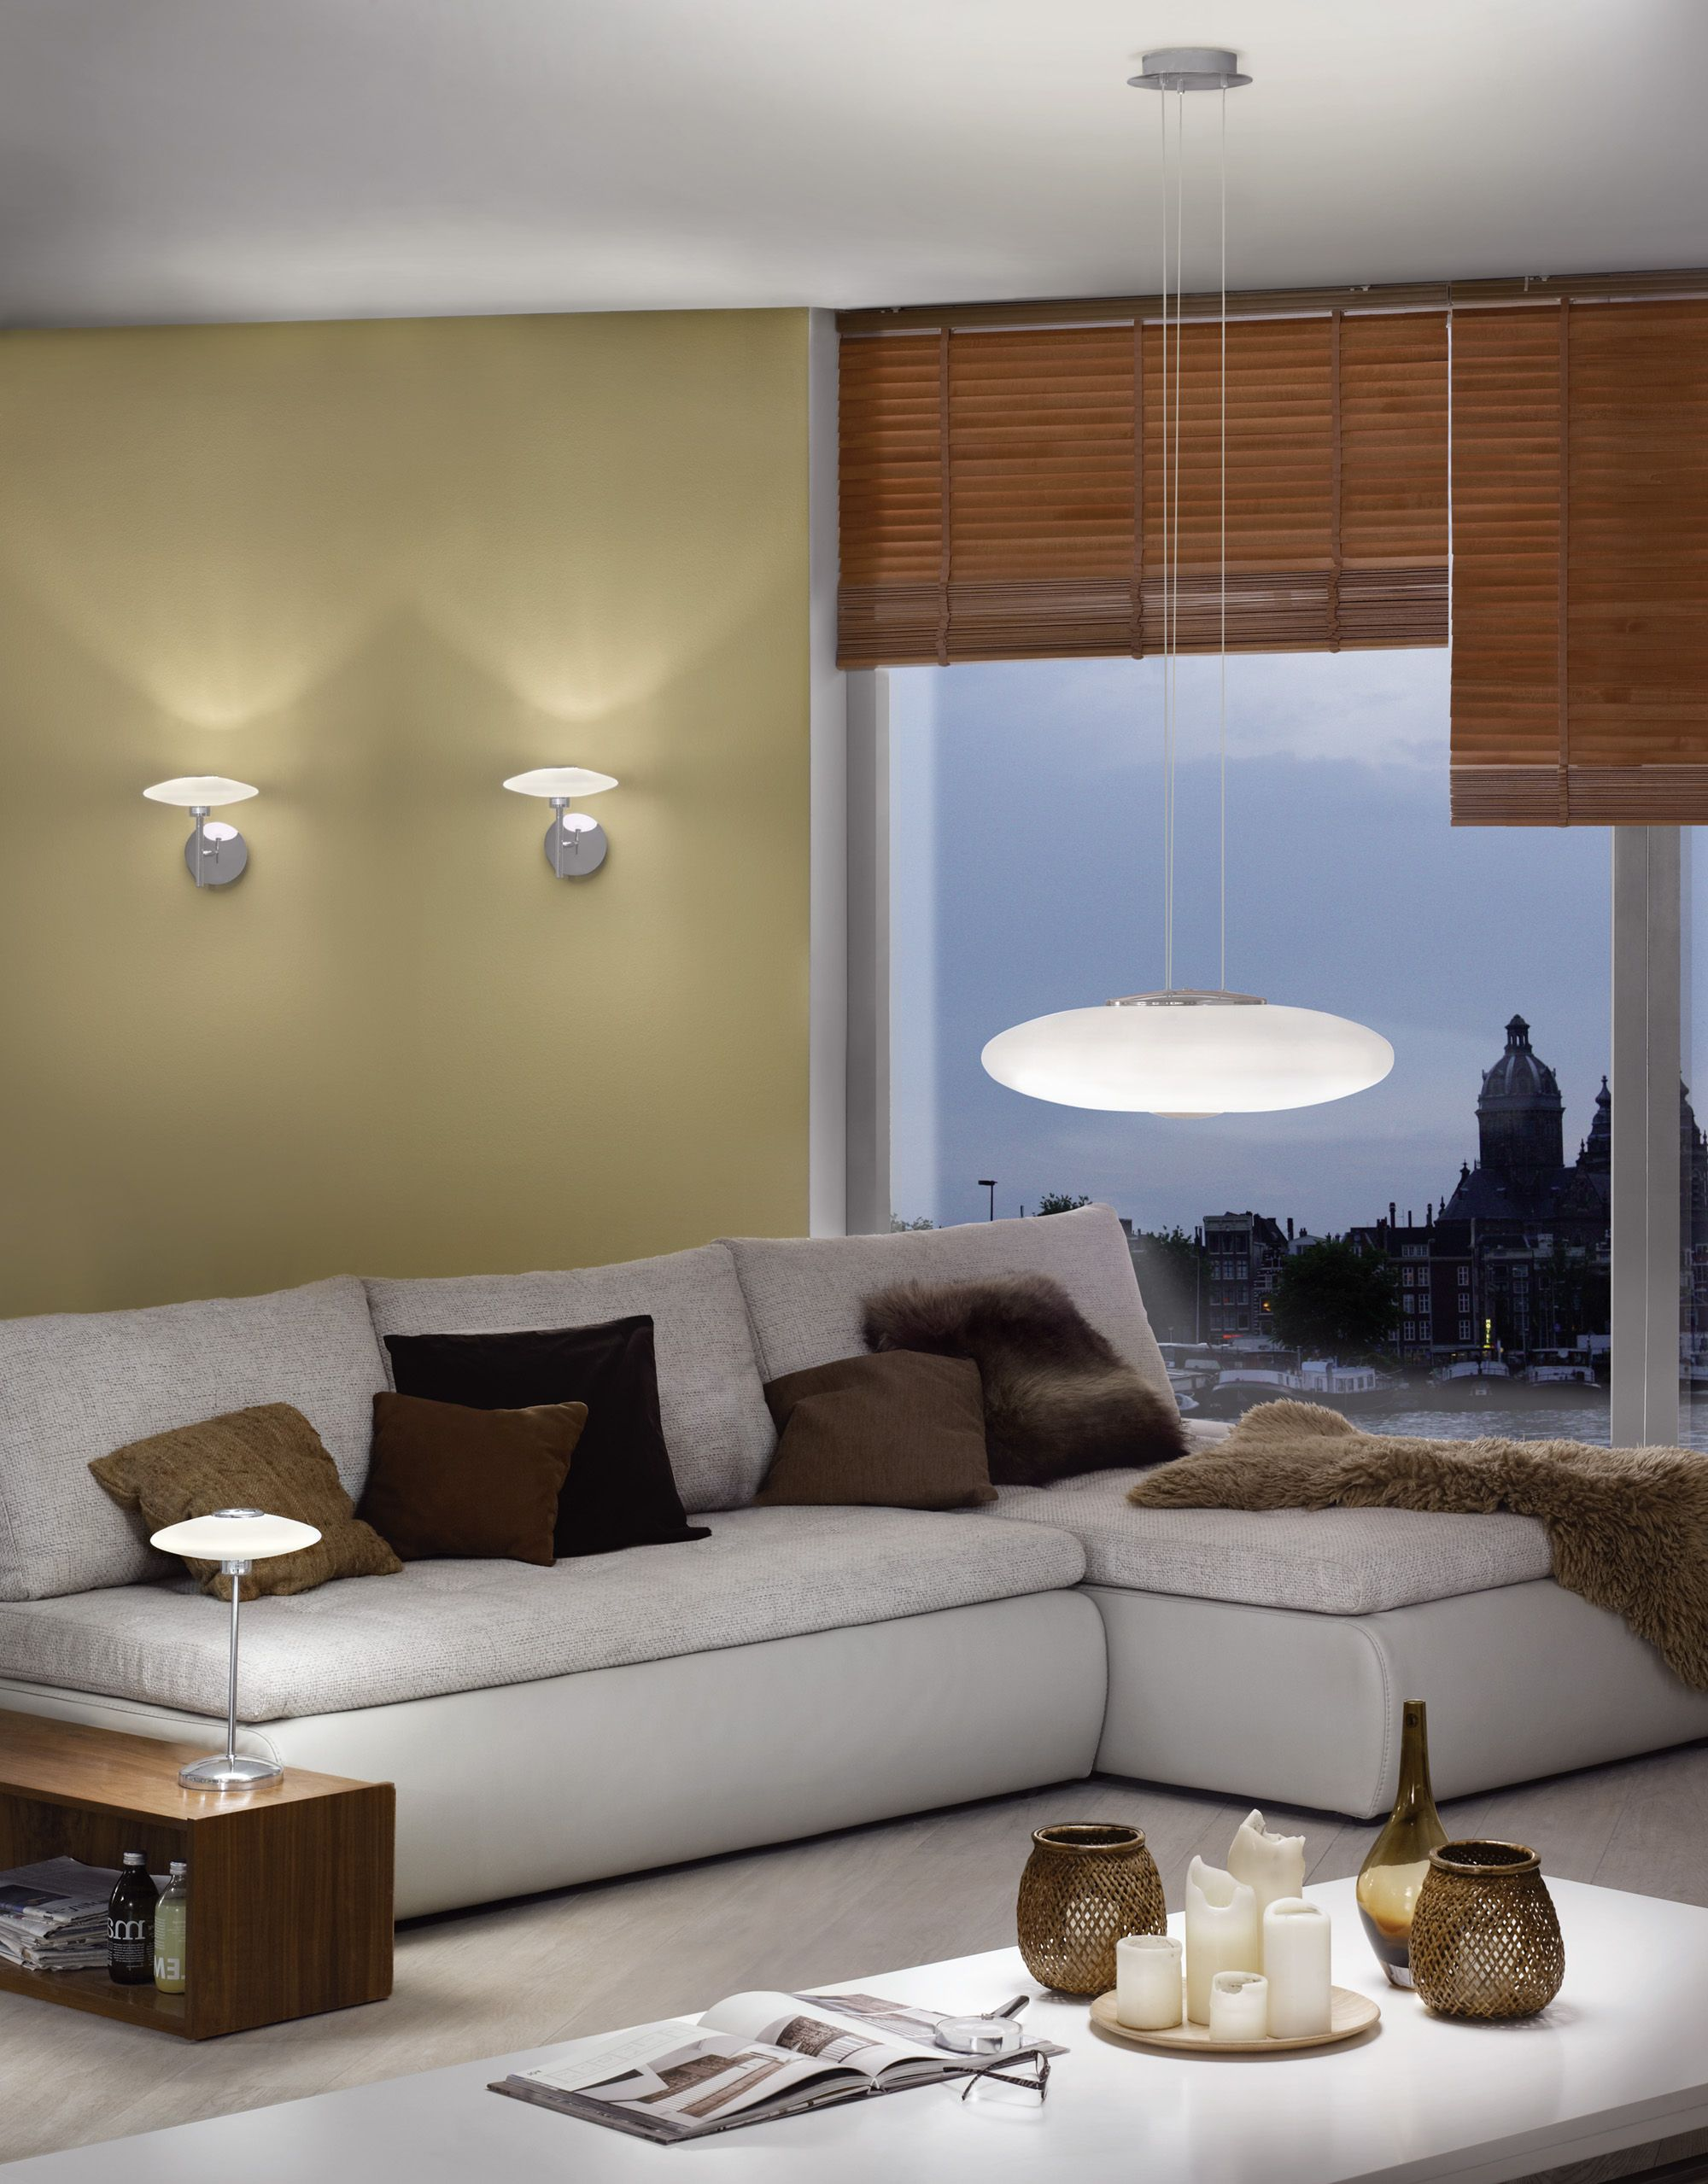 Eglo Melina Family With Pendant Lamp 91594, Wall Lamp 91596 And Table Lamp  91597 #